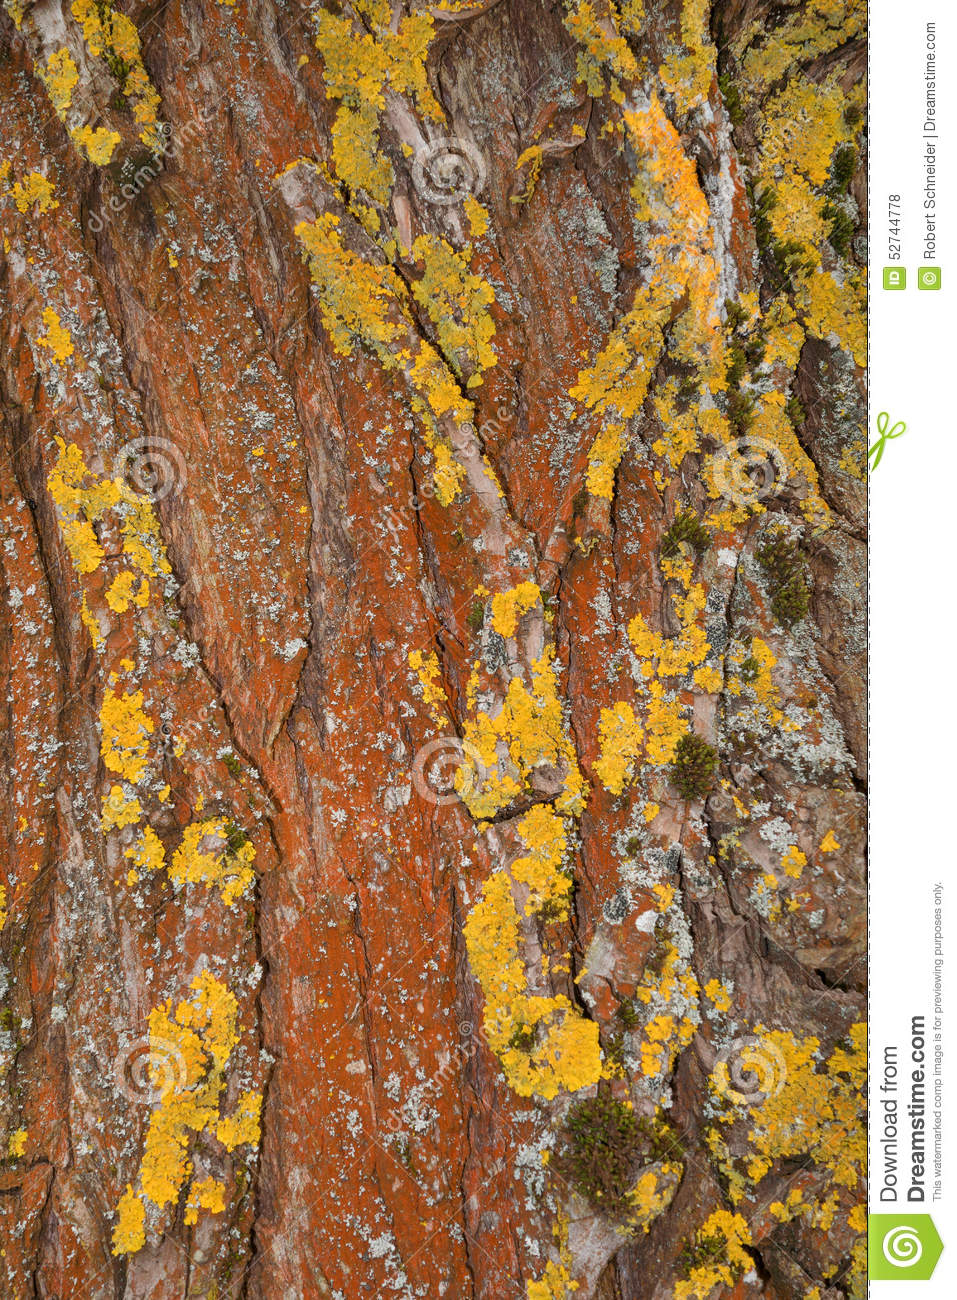 rust colored pattern in-#27